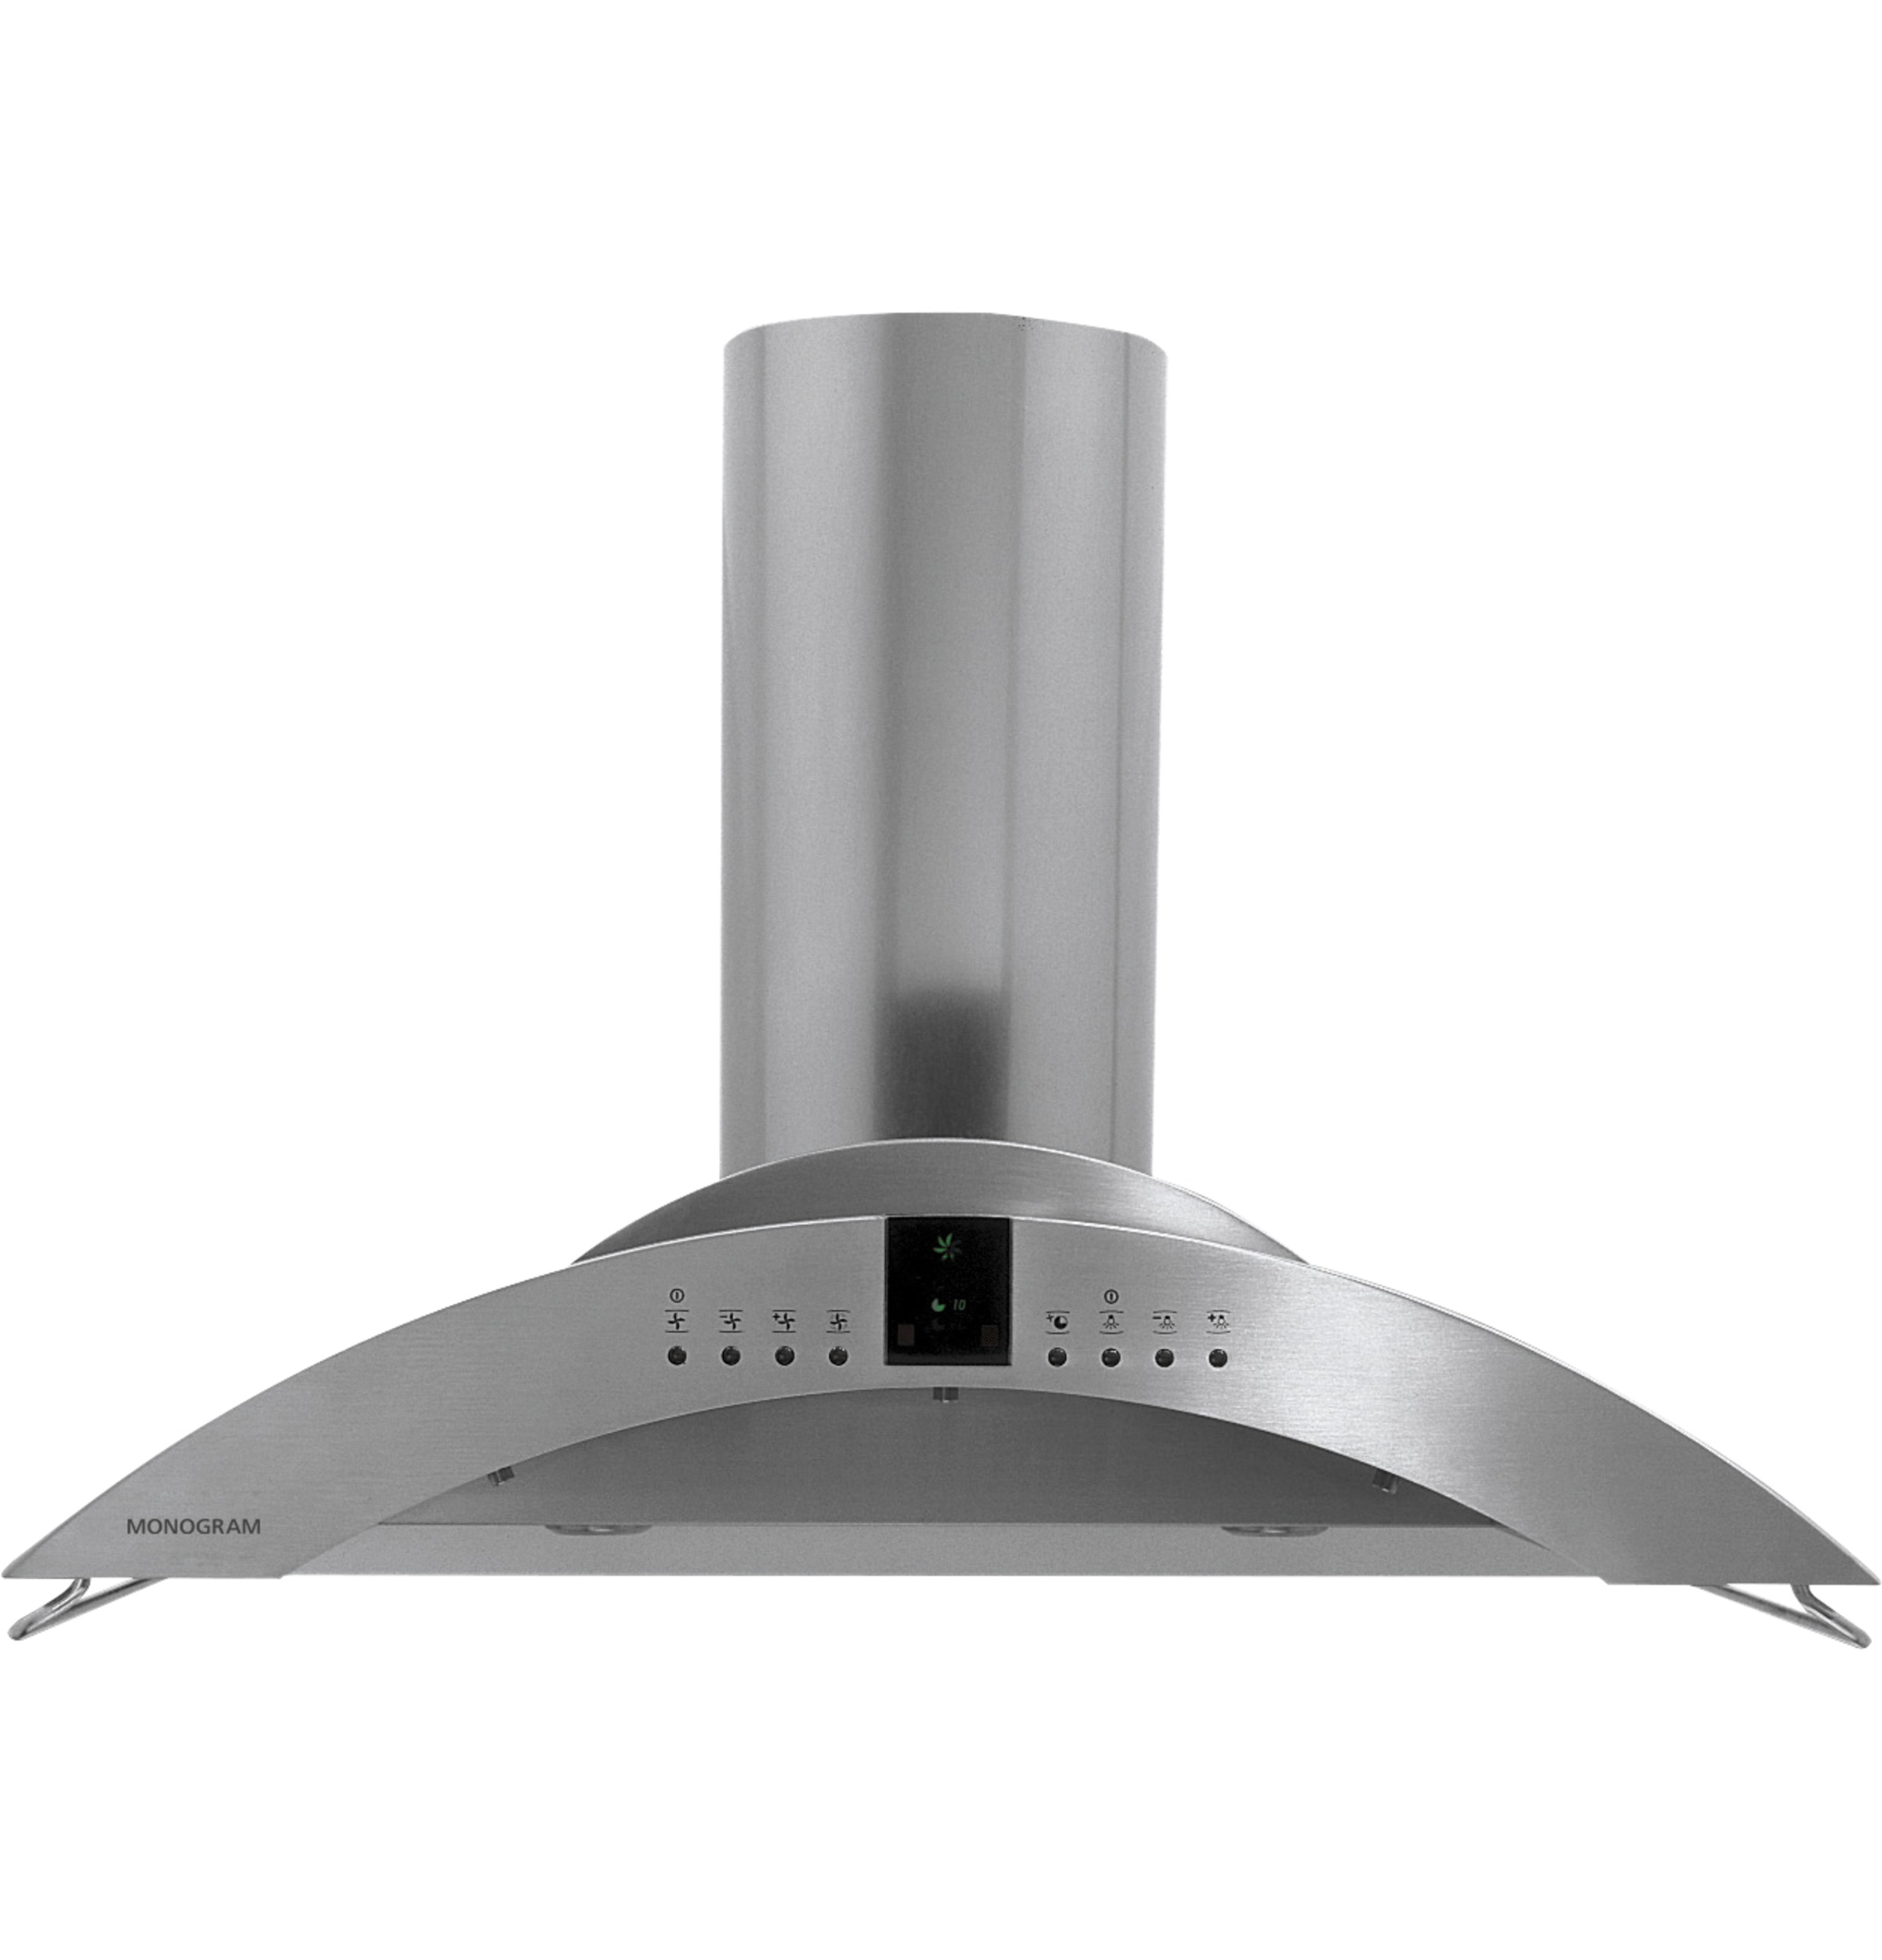 Ge Monogram Kitchen Appliances Monogram 36 Island Vent Hood Zv850spss Ge Appliances